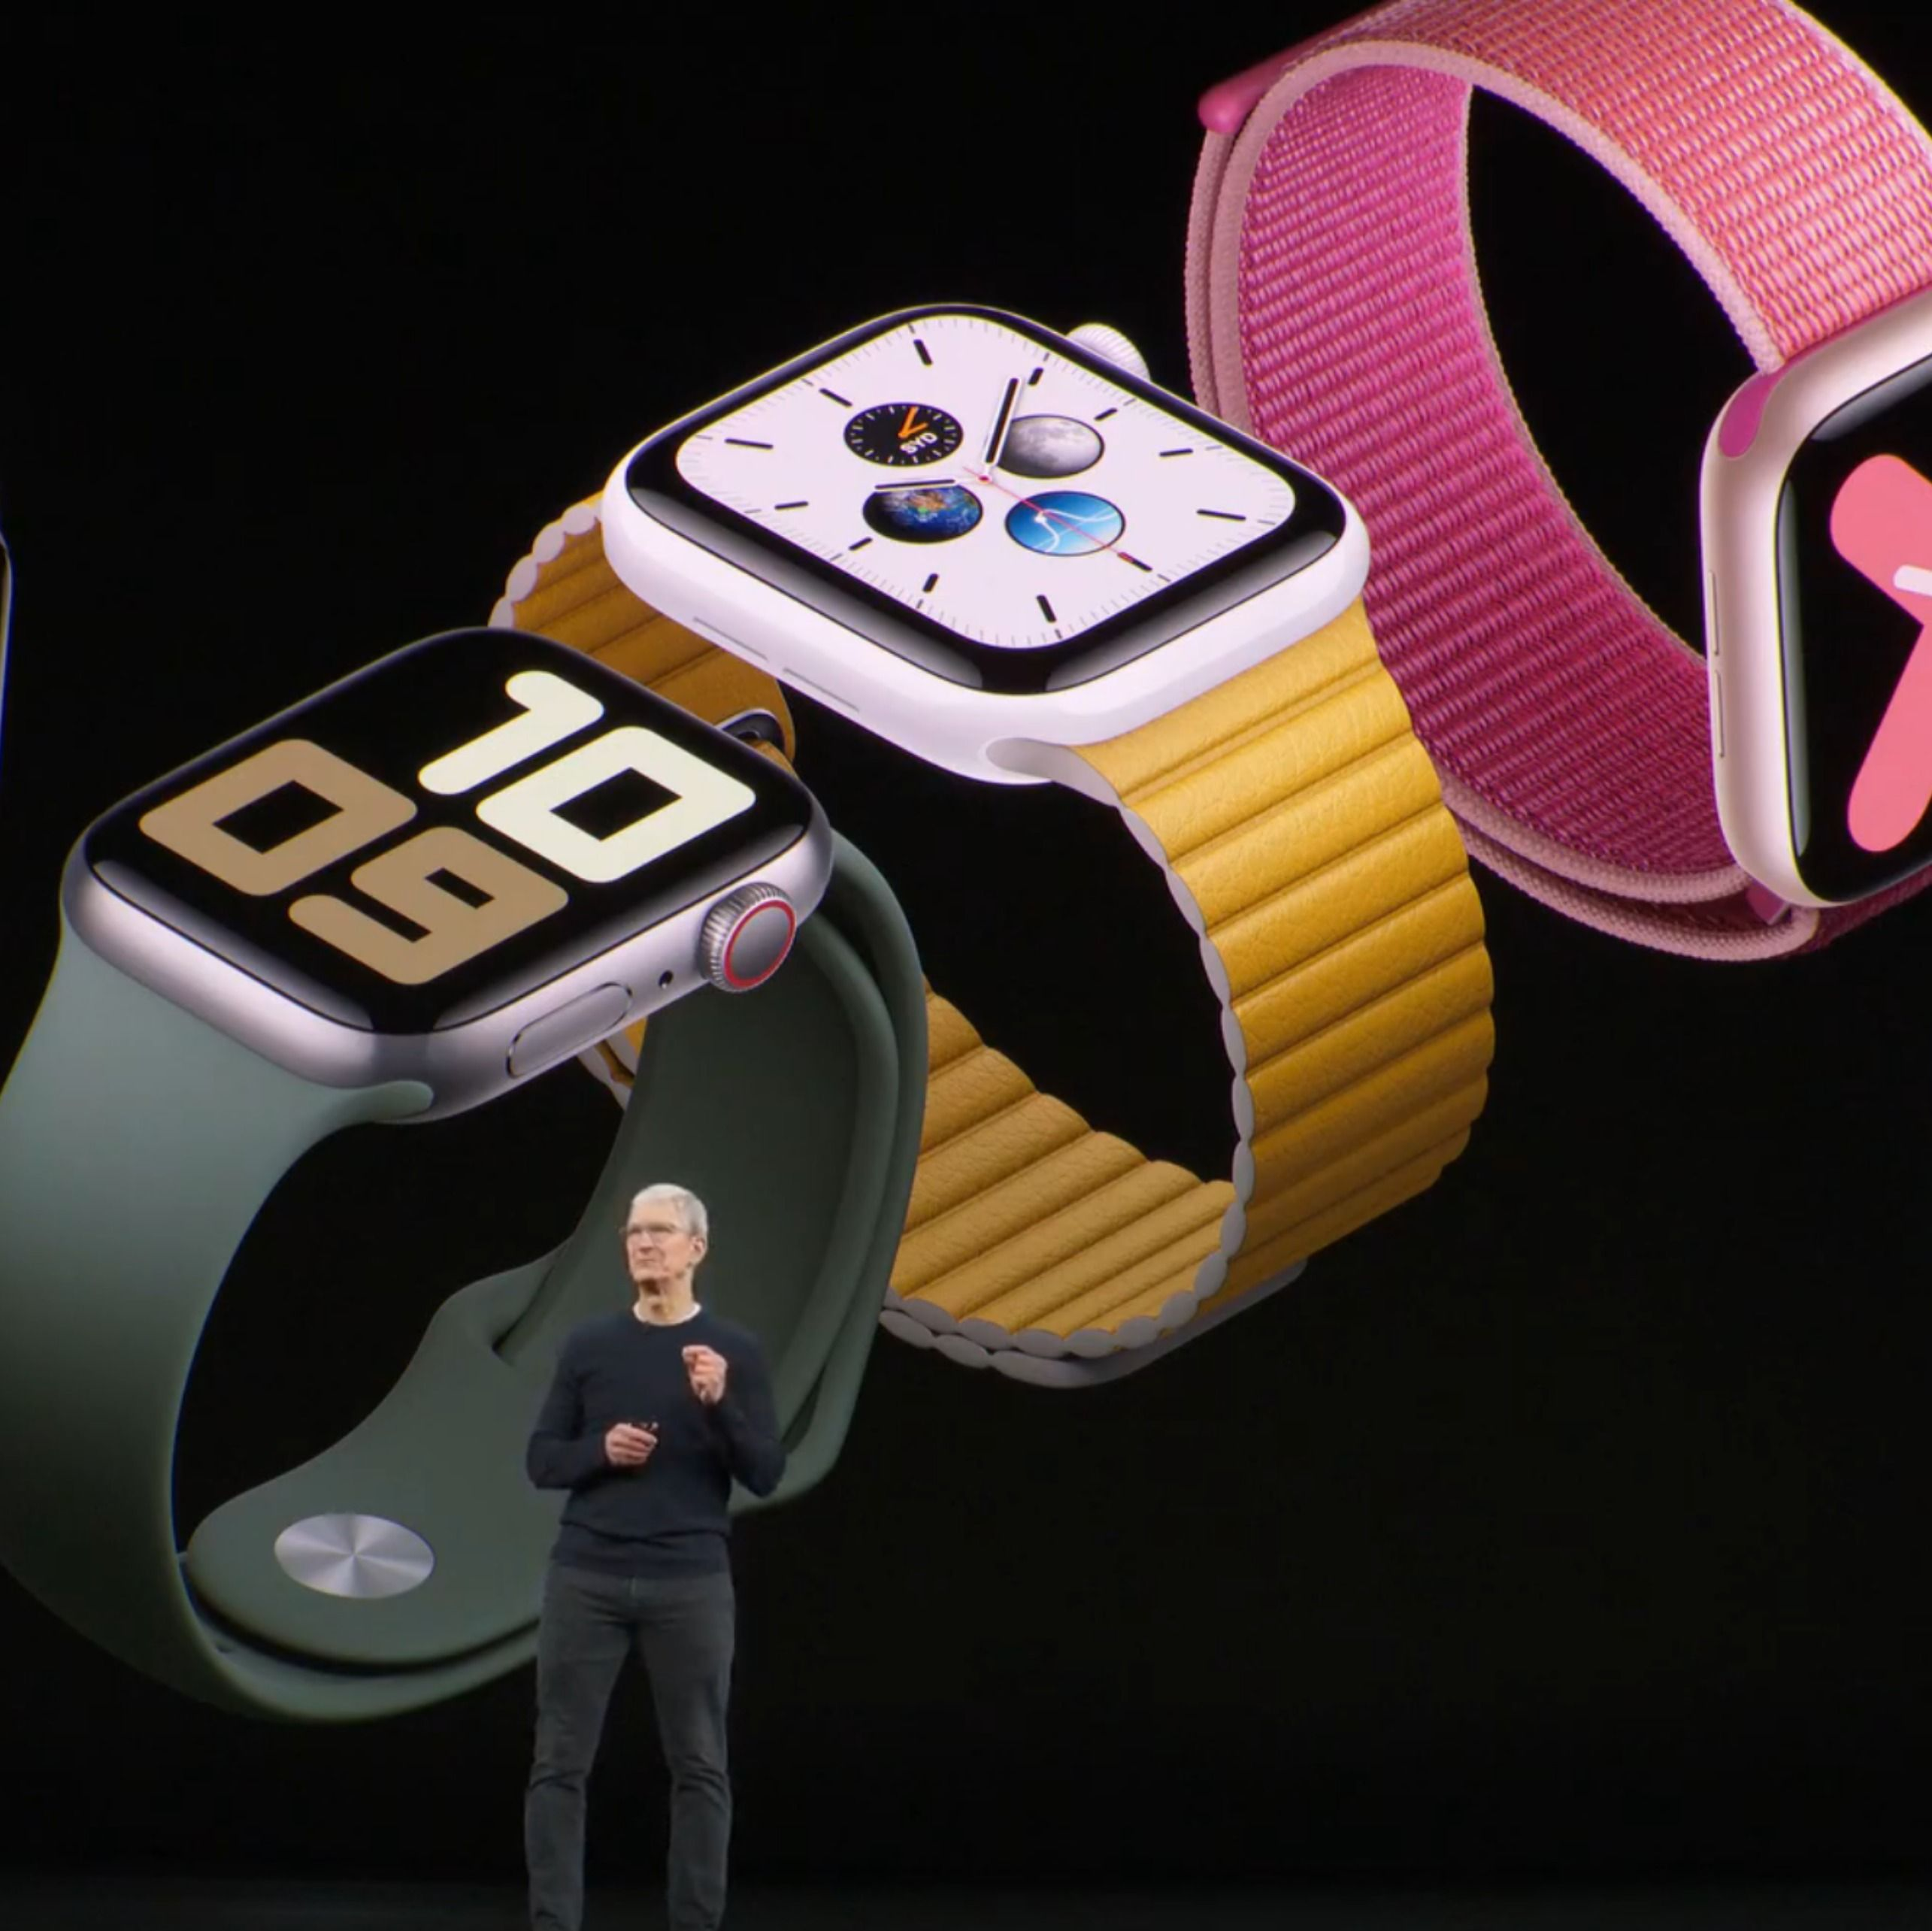 Apple Watch Series 5 starts at 399 (GPS) and 499 (GPS